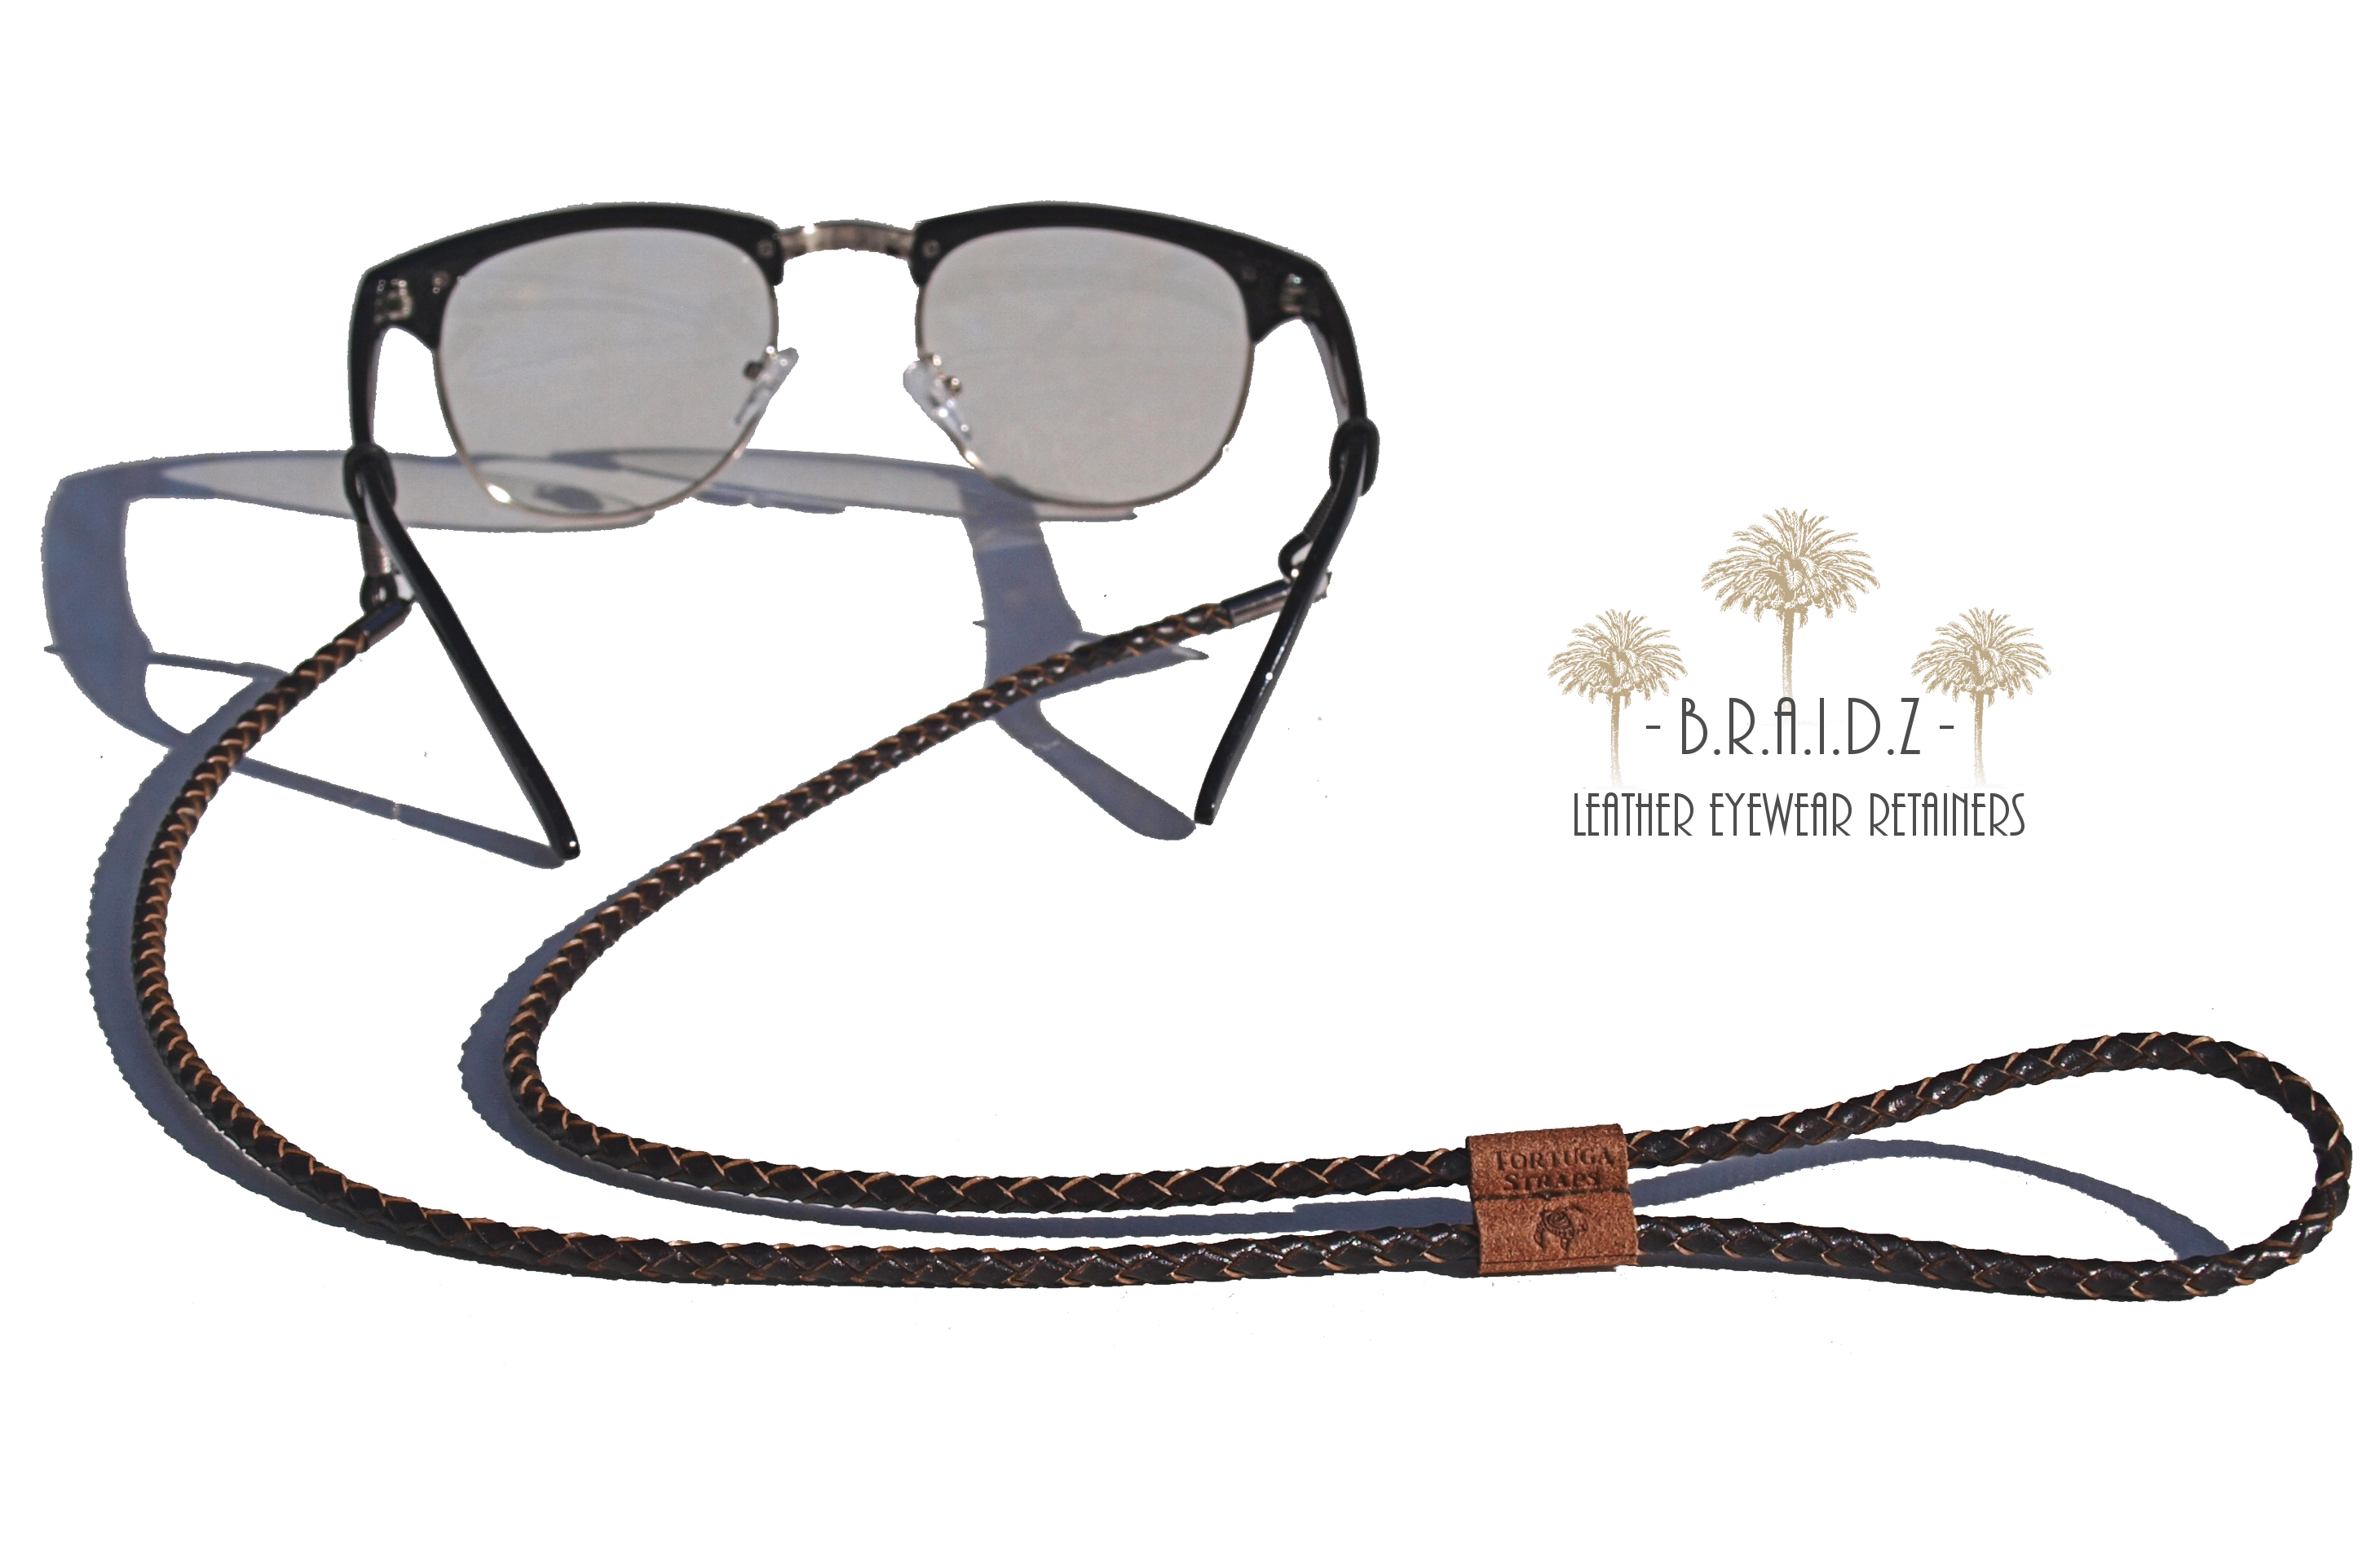 Tortuga Straps Adjustable Leather Eye Glasses Straps Lanyard Chain